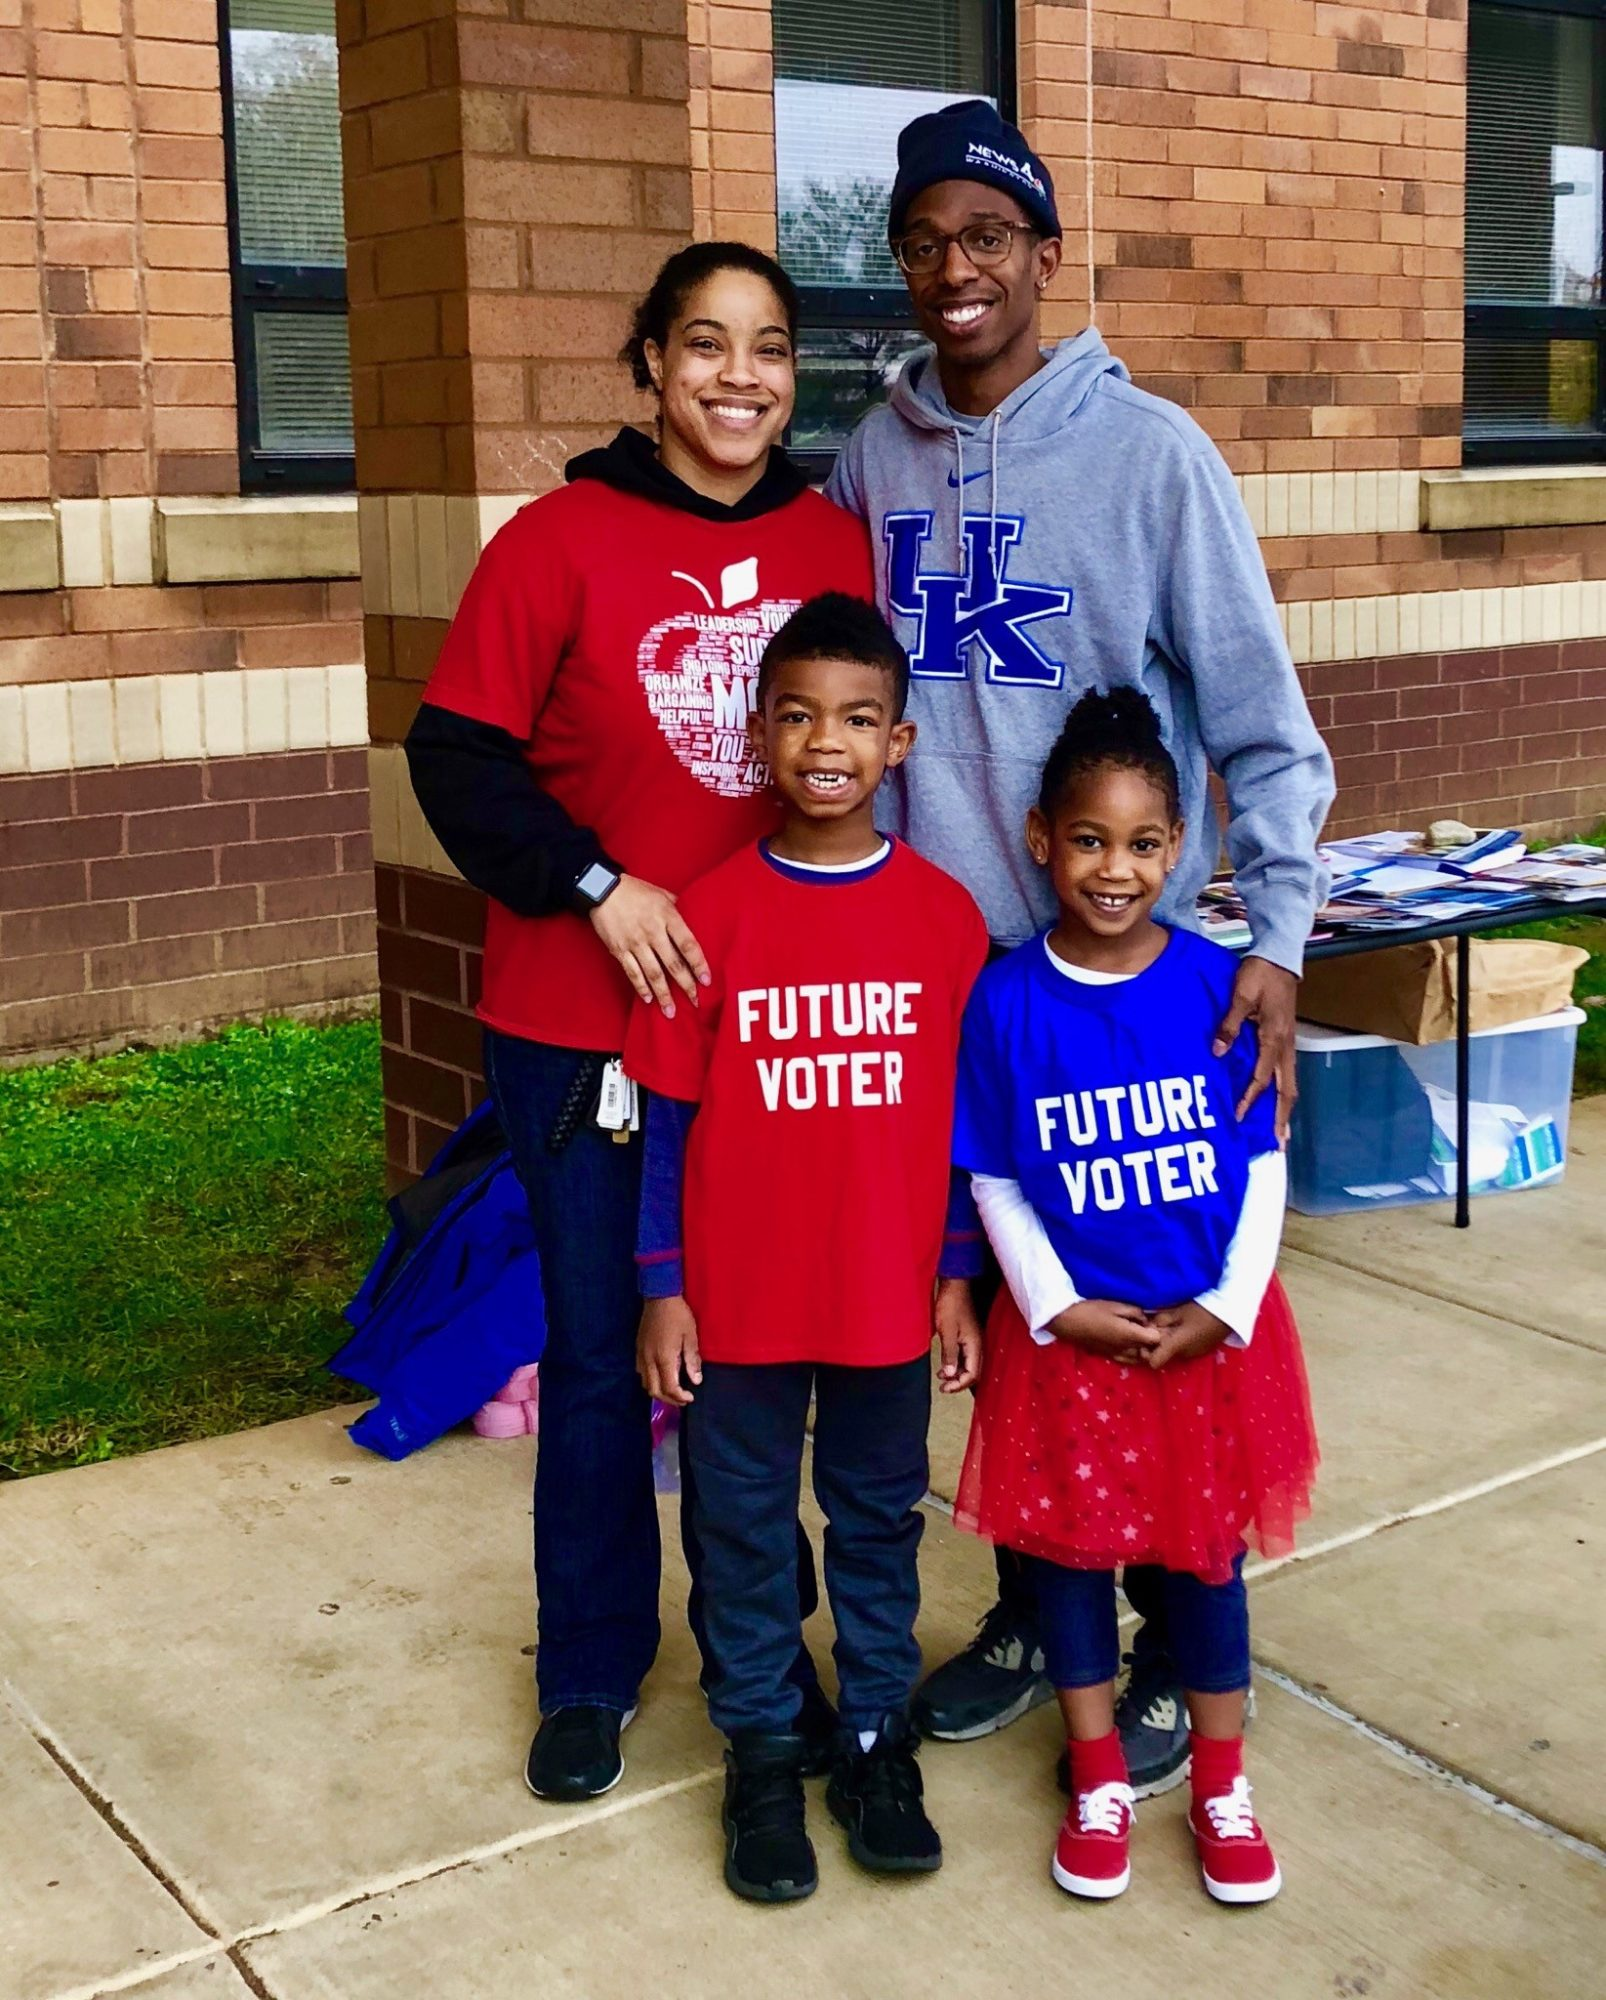 Voting for our future